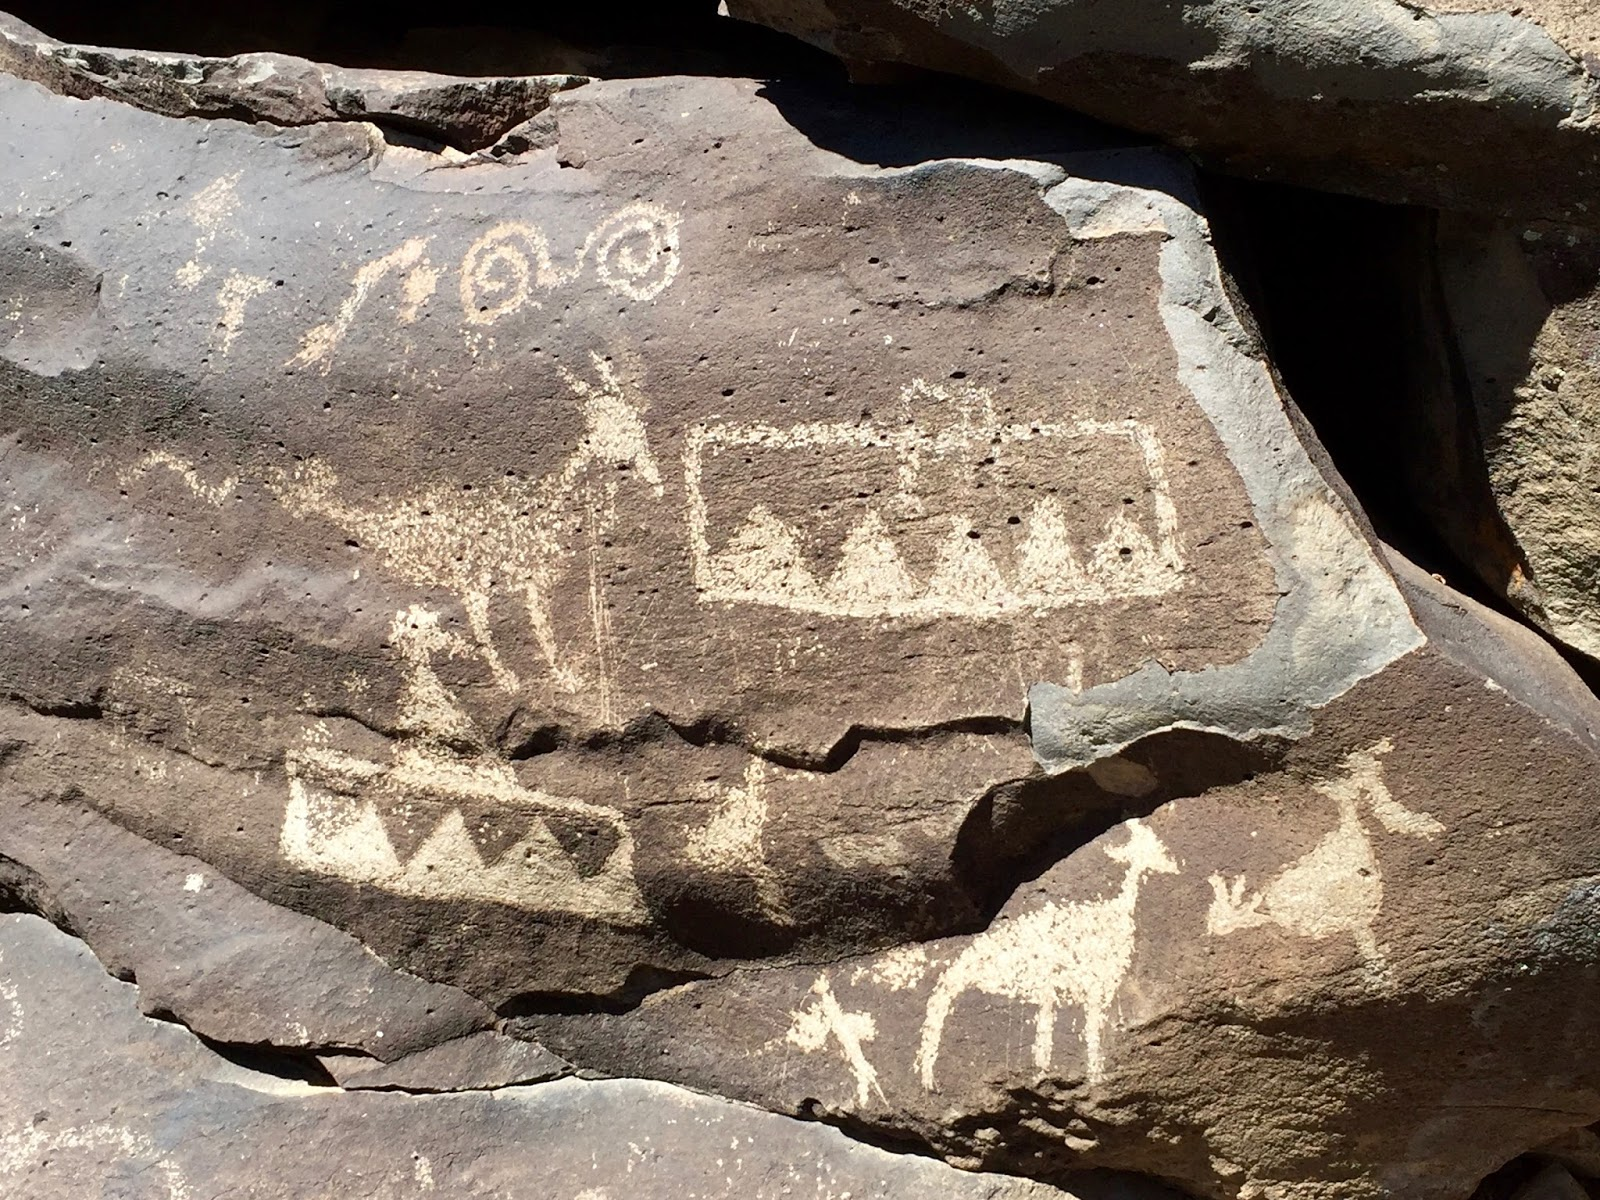 Looking for signs and symbols schoolartsroom art education the exact meanings of these petroglyphs are not known and we may not be entitled to that knowledge but there are many recognizable images such as hands biocorpaavc